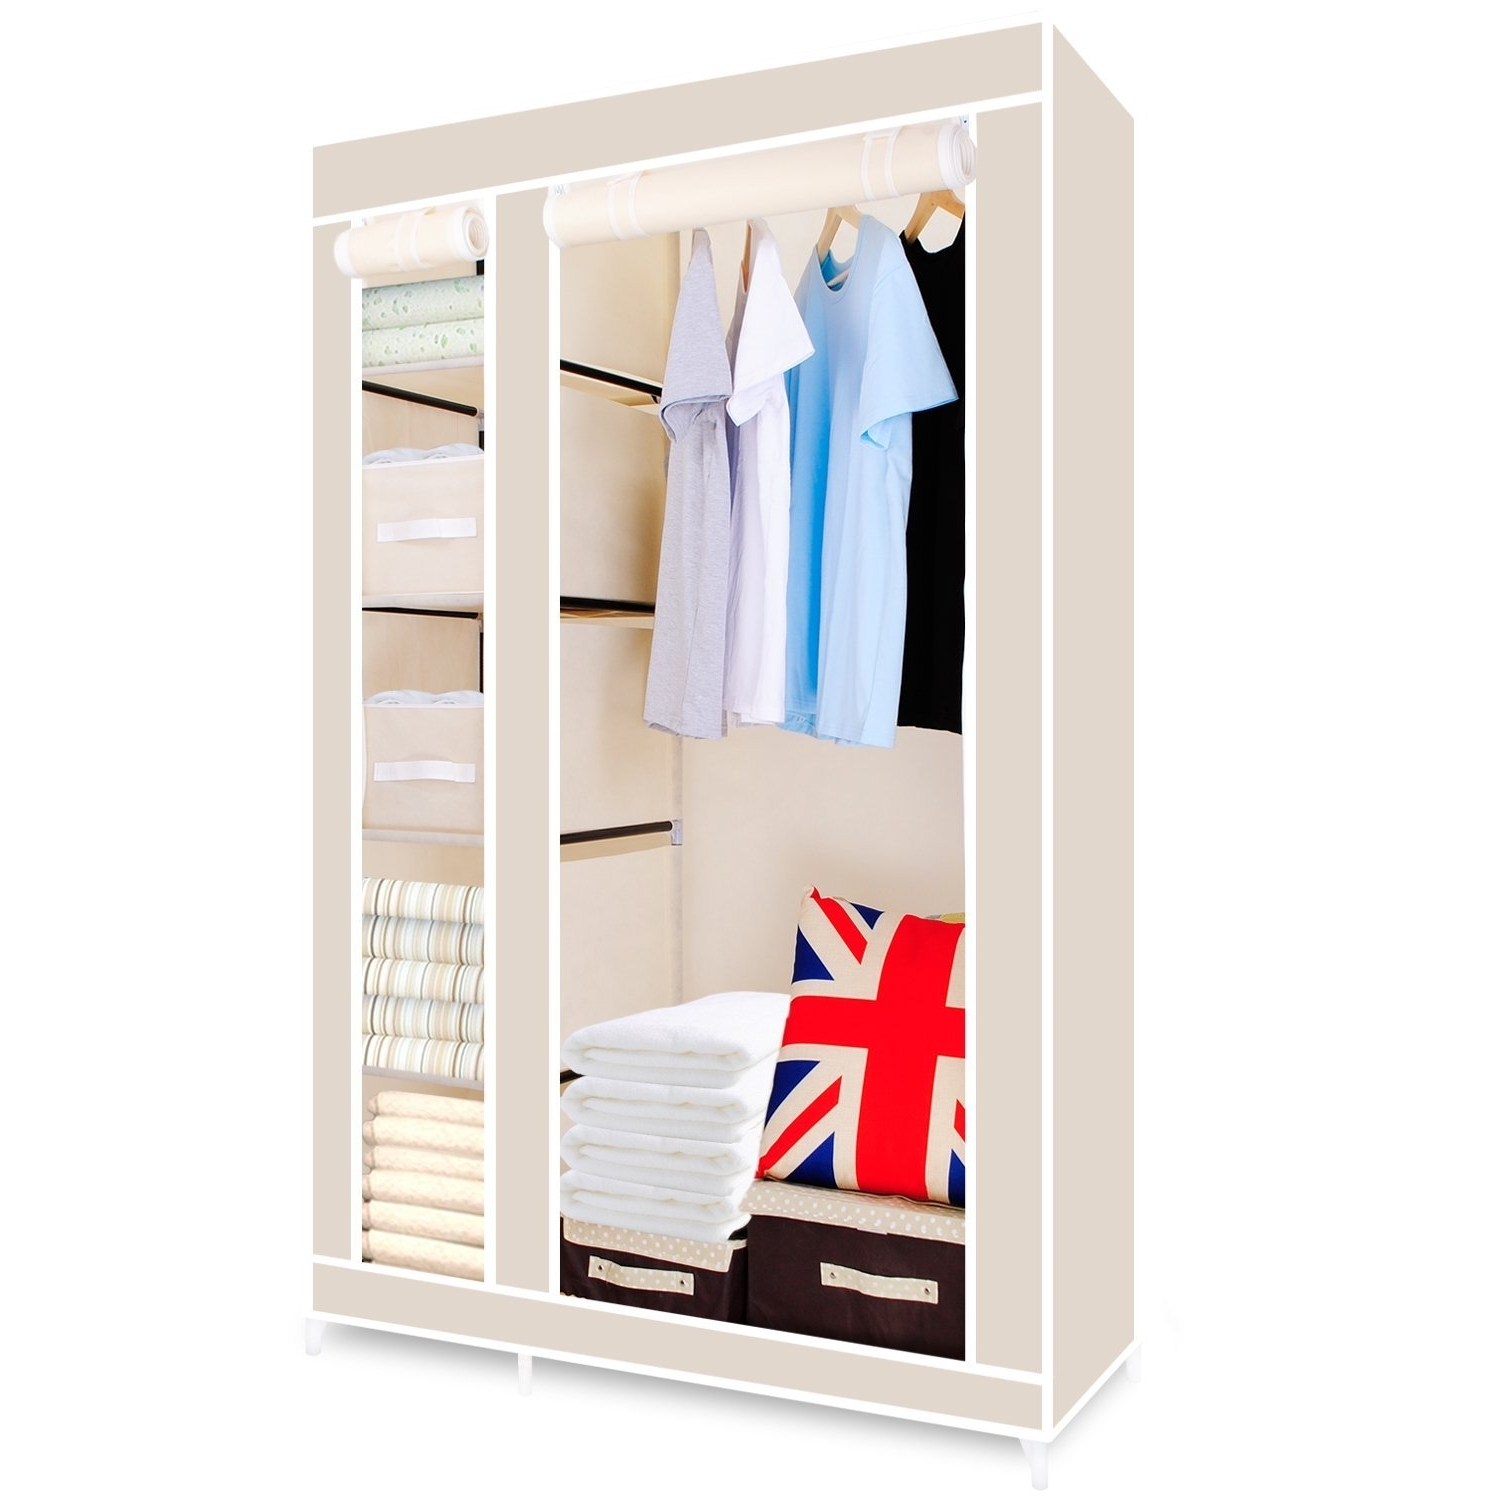 Double Canvas Wardrobes Rail Clothes Storage Cupboard Intended For 2018 Hst Mall Double Canvas Wardrobe Cupboard Clothes Storage Solution (View 2 of 15)